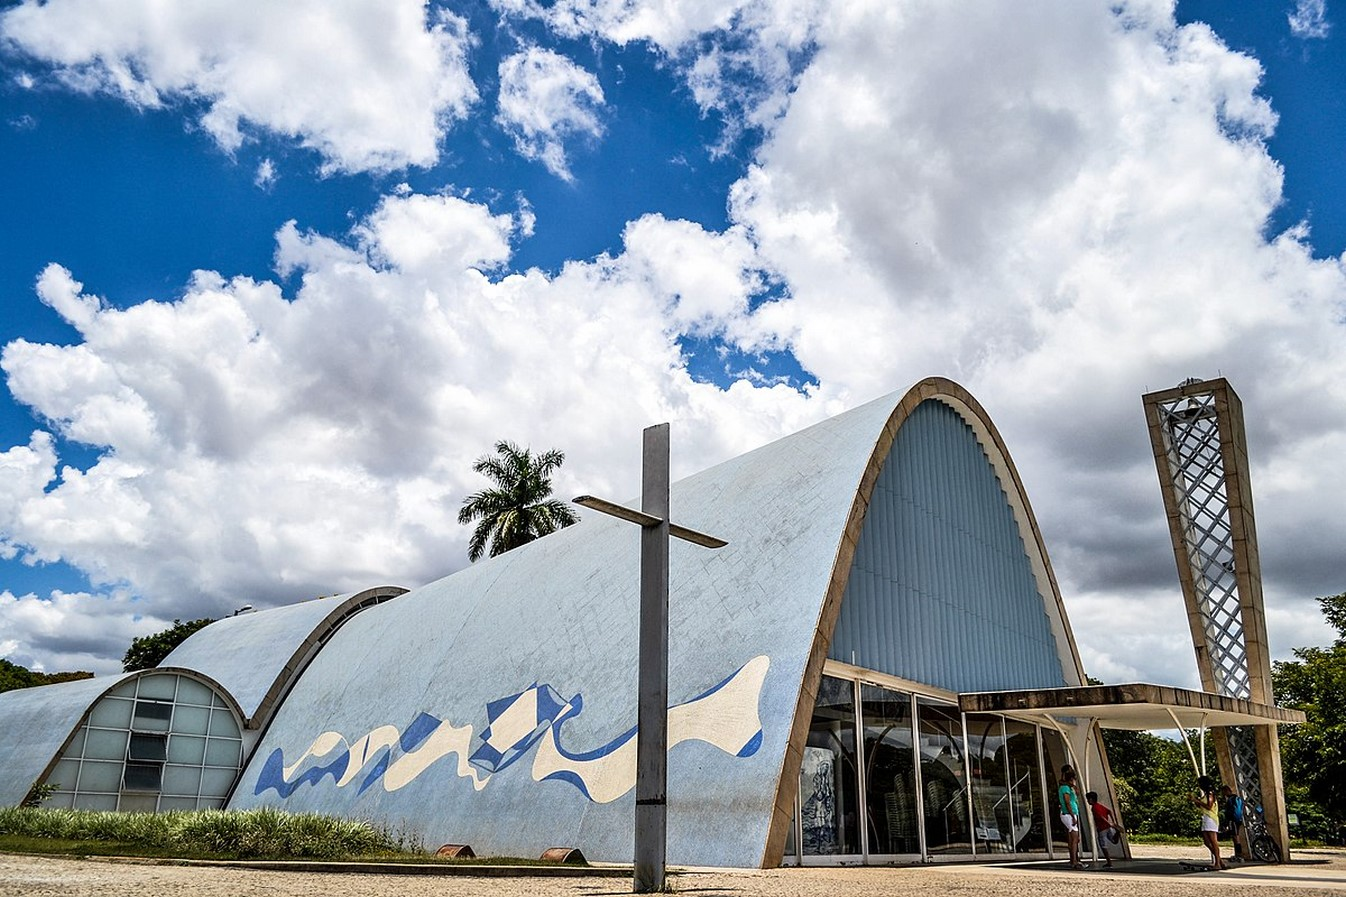 Church of Saint Francis of Assisi by Oscar Niemeyer: A Scandal in city's conservative culture - Sheet6